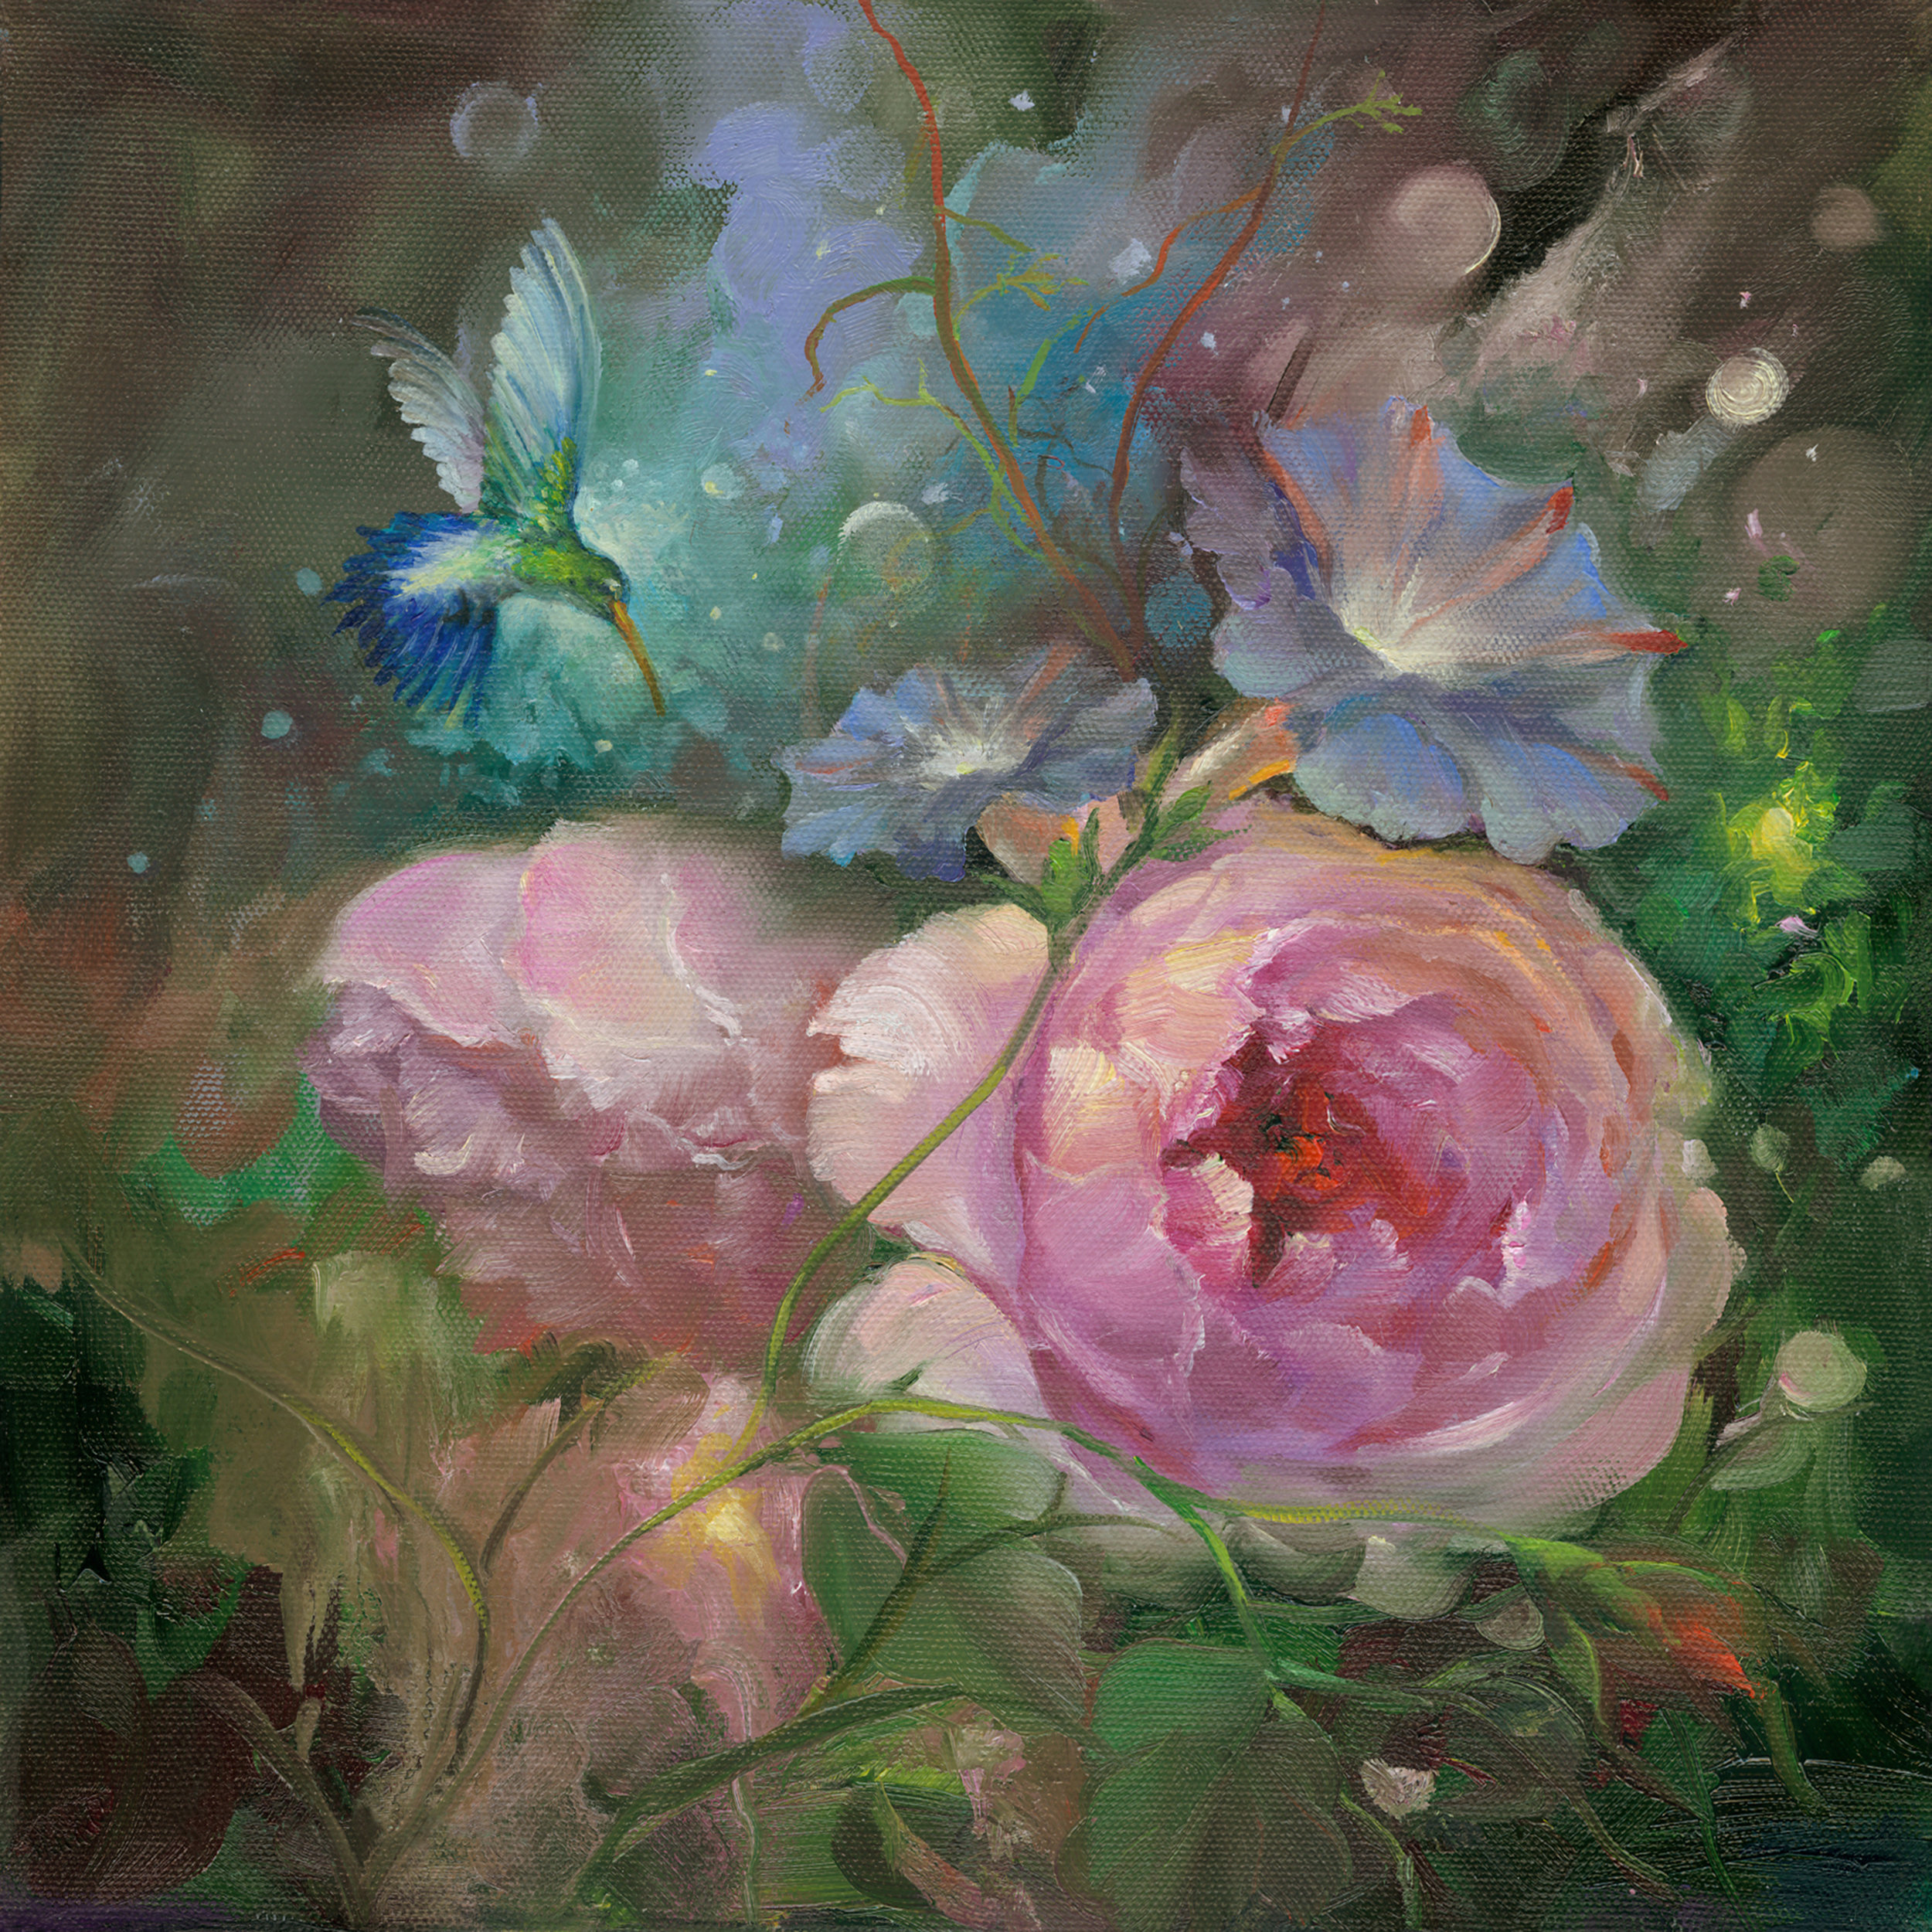 ''Fantasy Garden'' - ''Small Treasures'' 12x12 on Gallery wrap canvas with 1-1/2 in deep sides. ( no frame needed ) $ 199.00Hand signed by Gary Jenkins